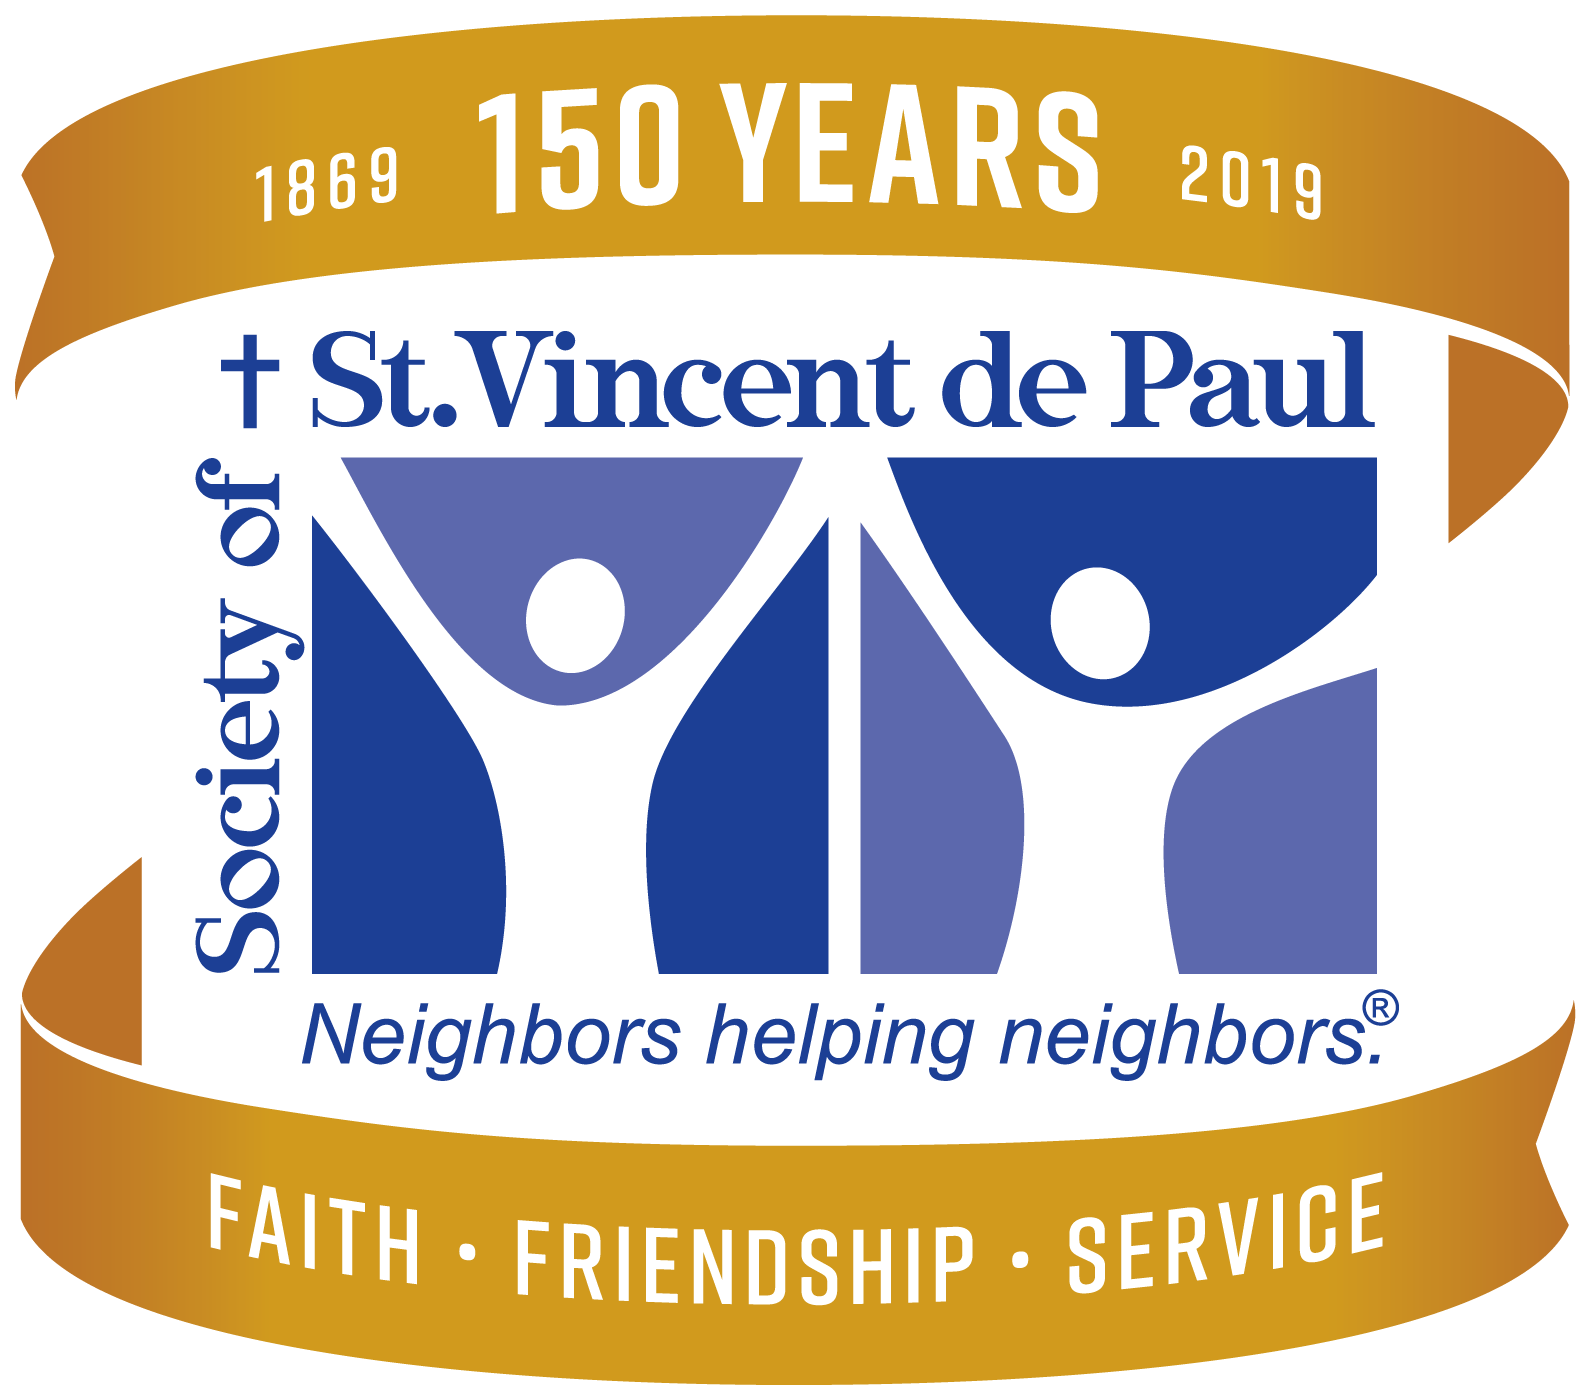 St. Vincent de Paul – Cincinnati